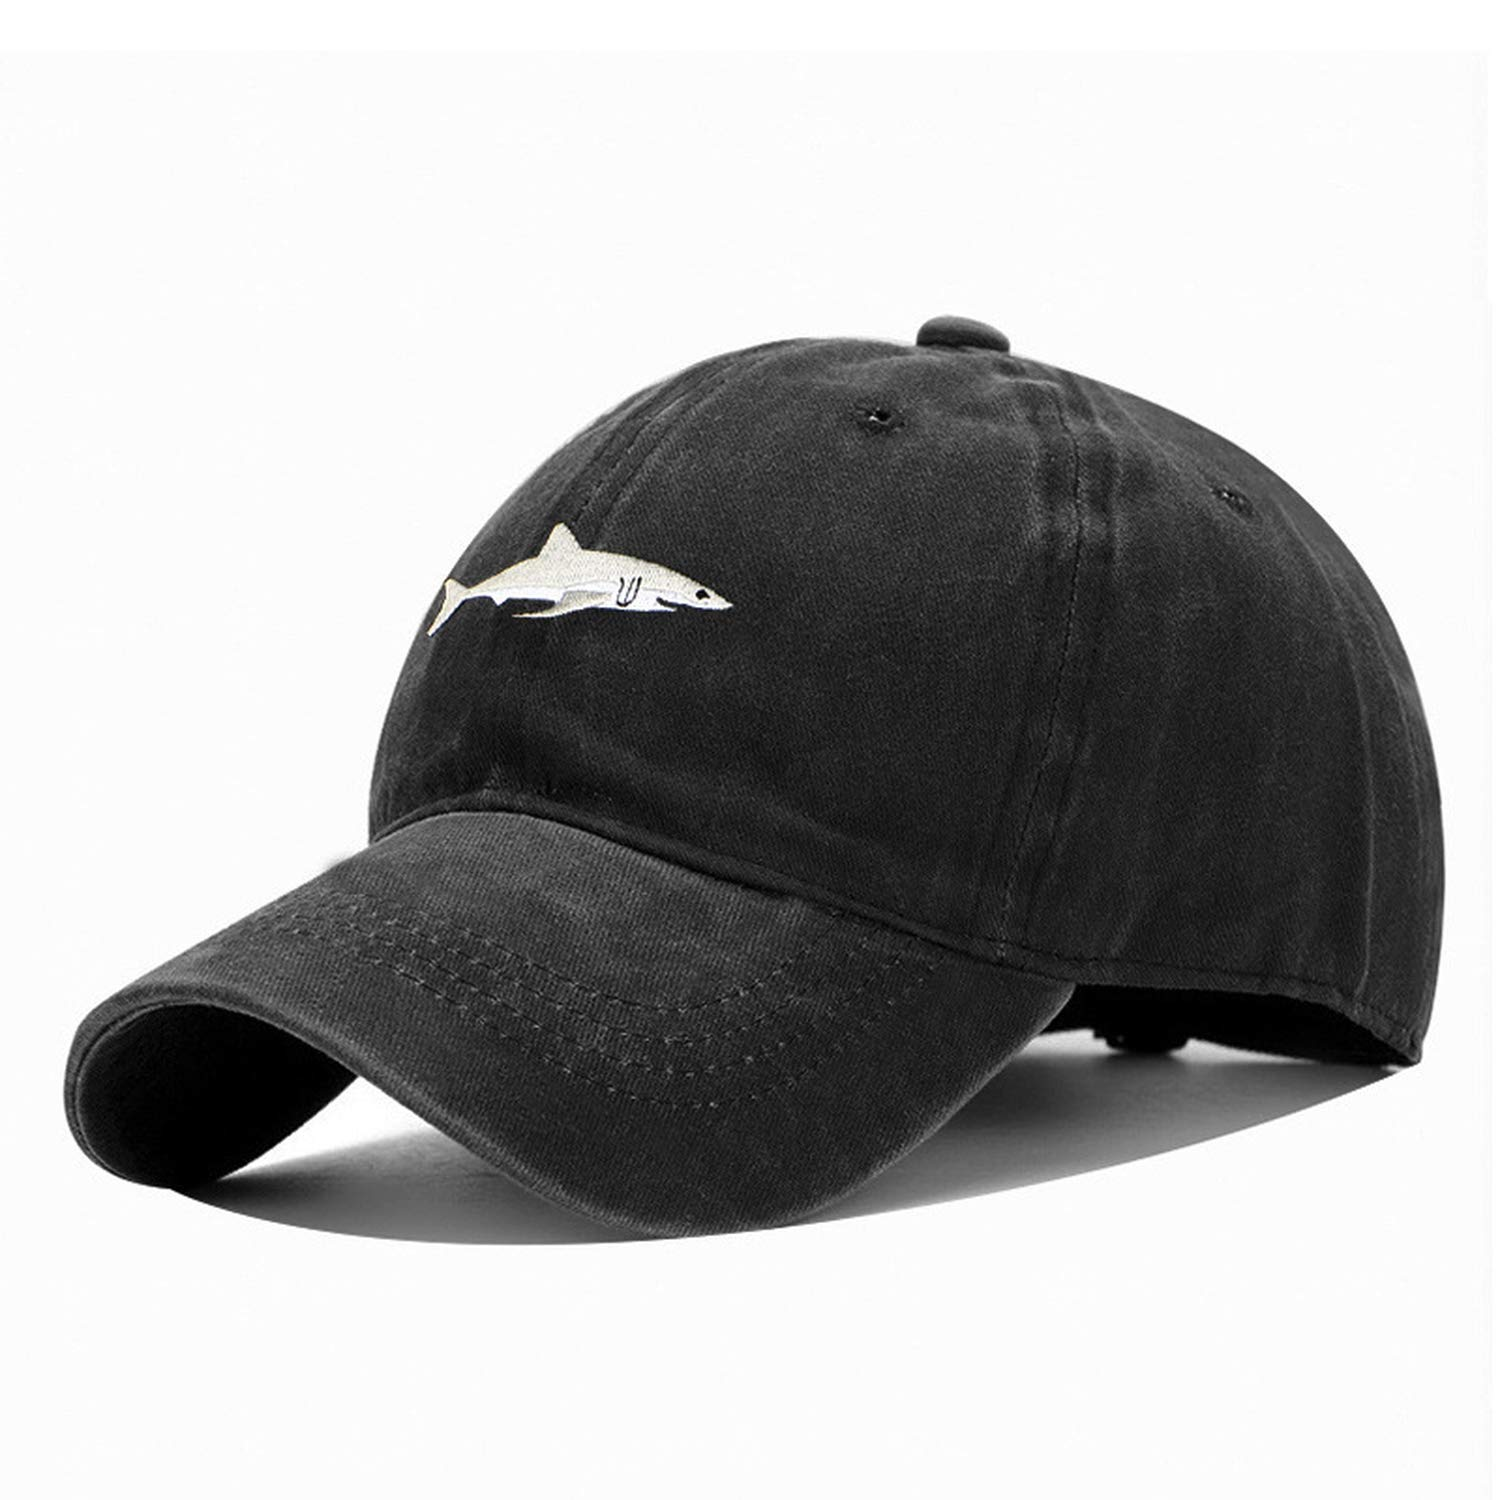 Baseball Cap Men Dad Hat for Women Embroidery Flexfit Hat Full Cap Bend Visor Male Fitted Cap Baseball Hats